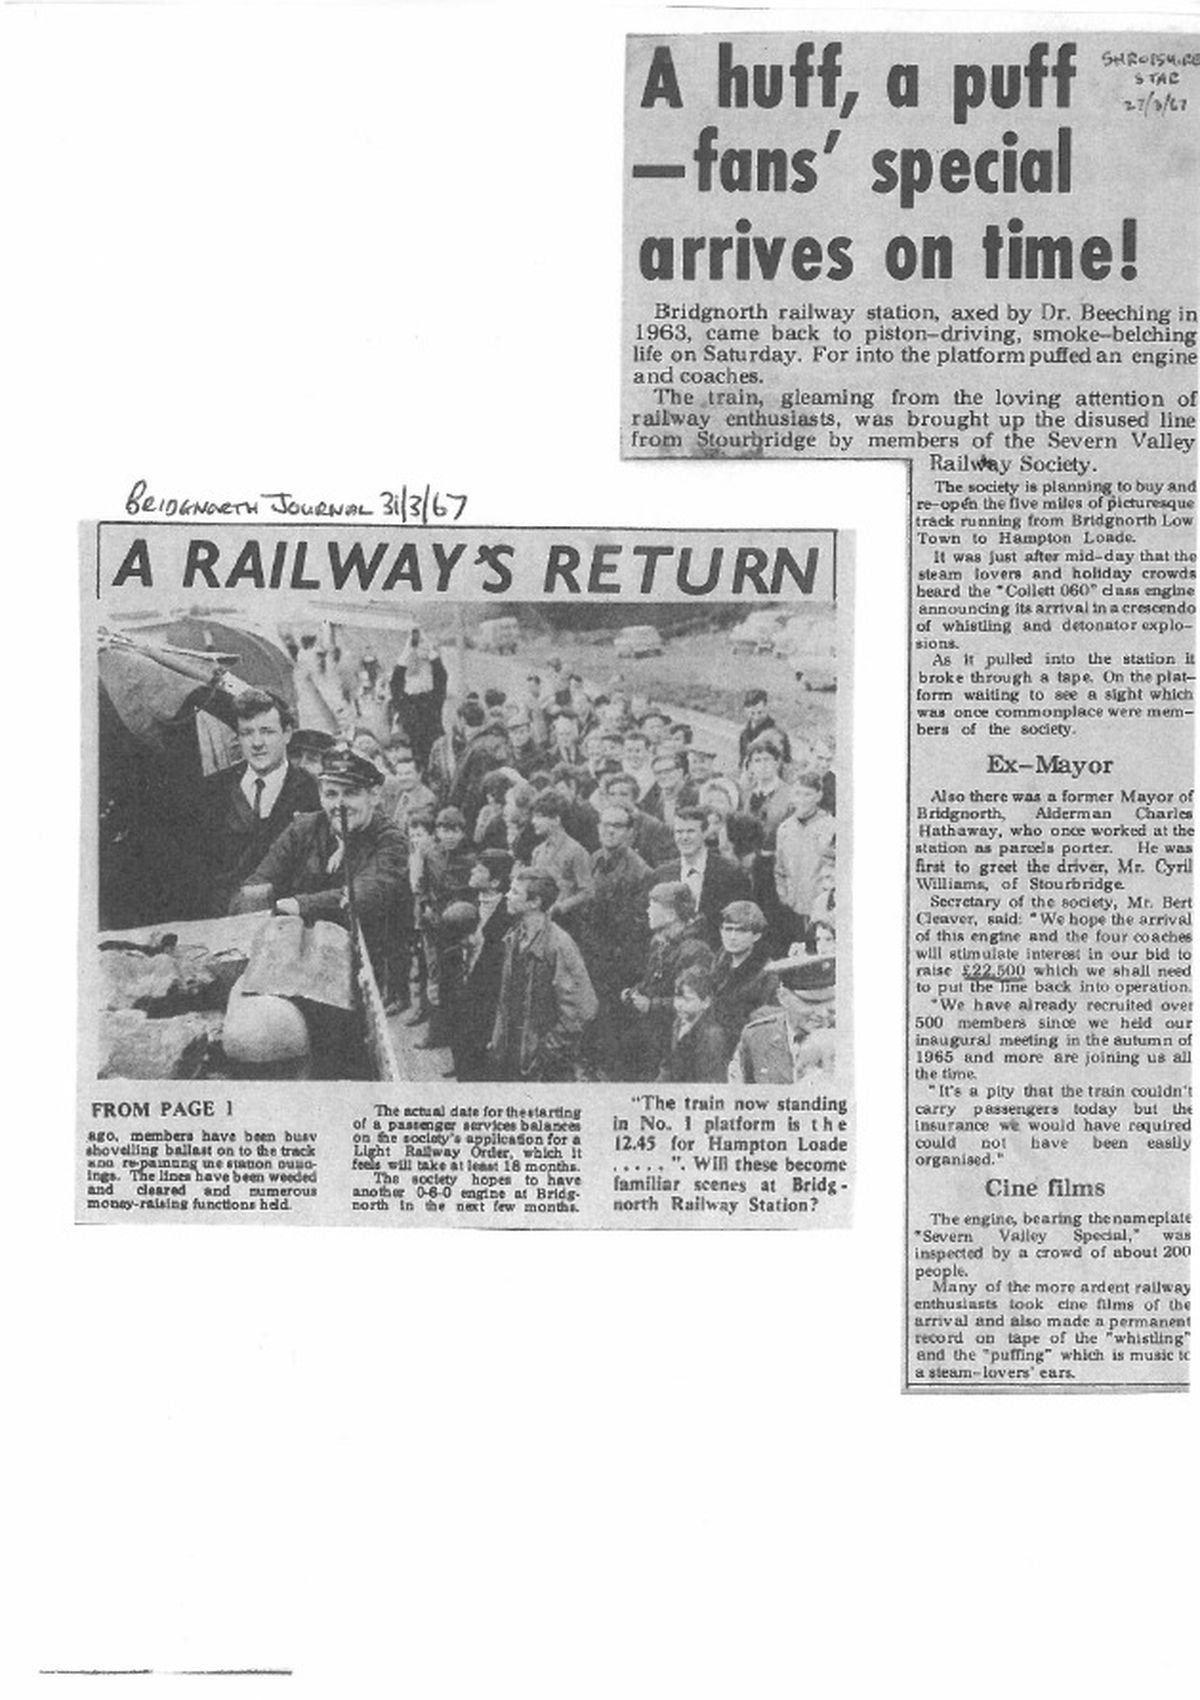 A newspaper articles marking the engine's arrival